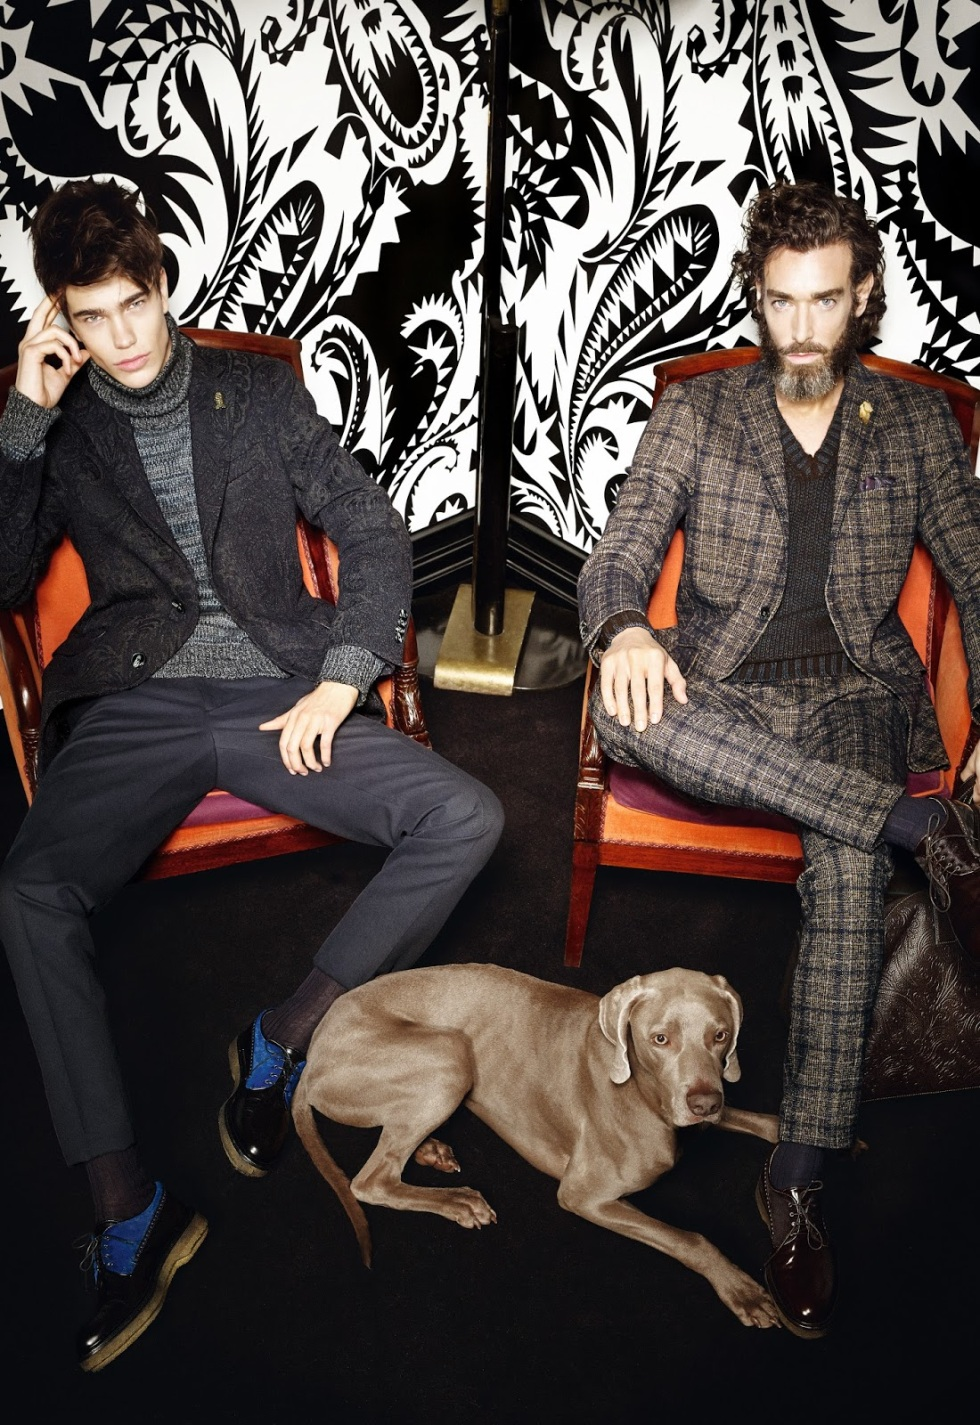 """Etro Uomo Fall/Winter 2015.16 Campaign/Lookbook. The collection was referred to as being """"as rich and curated as a cabinet of curiosities."""" This collection was a strong example of mind over matter in the pursuit of artistic sartorial adornment."""